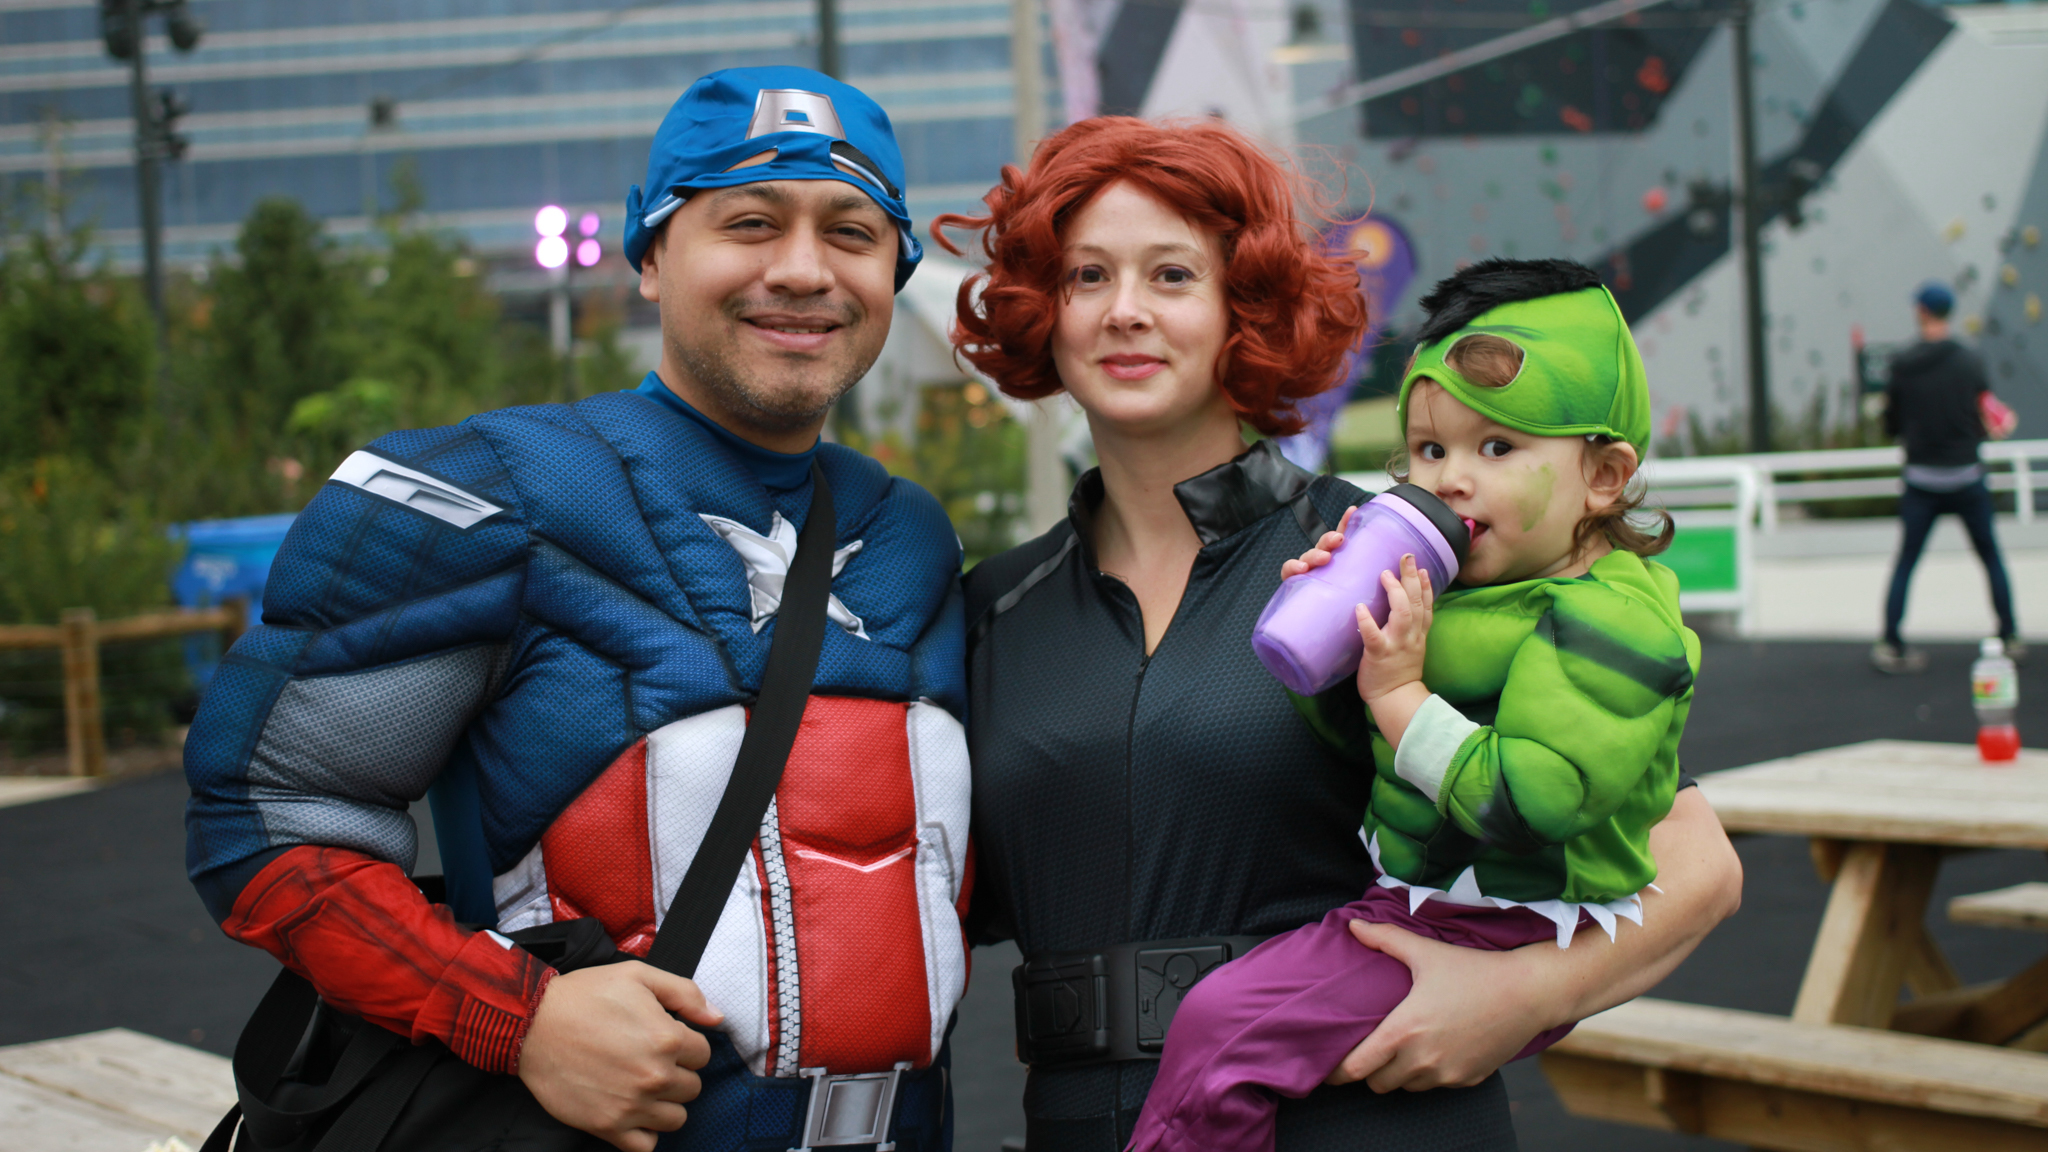 Photos from Chicago's first Halloween Gathering 2015